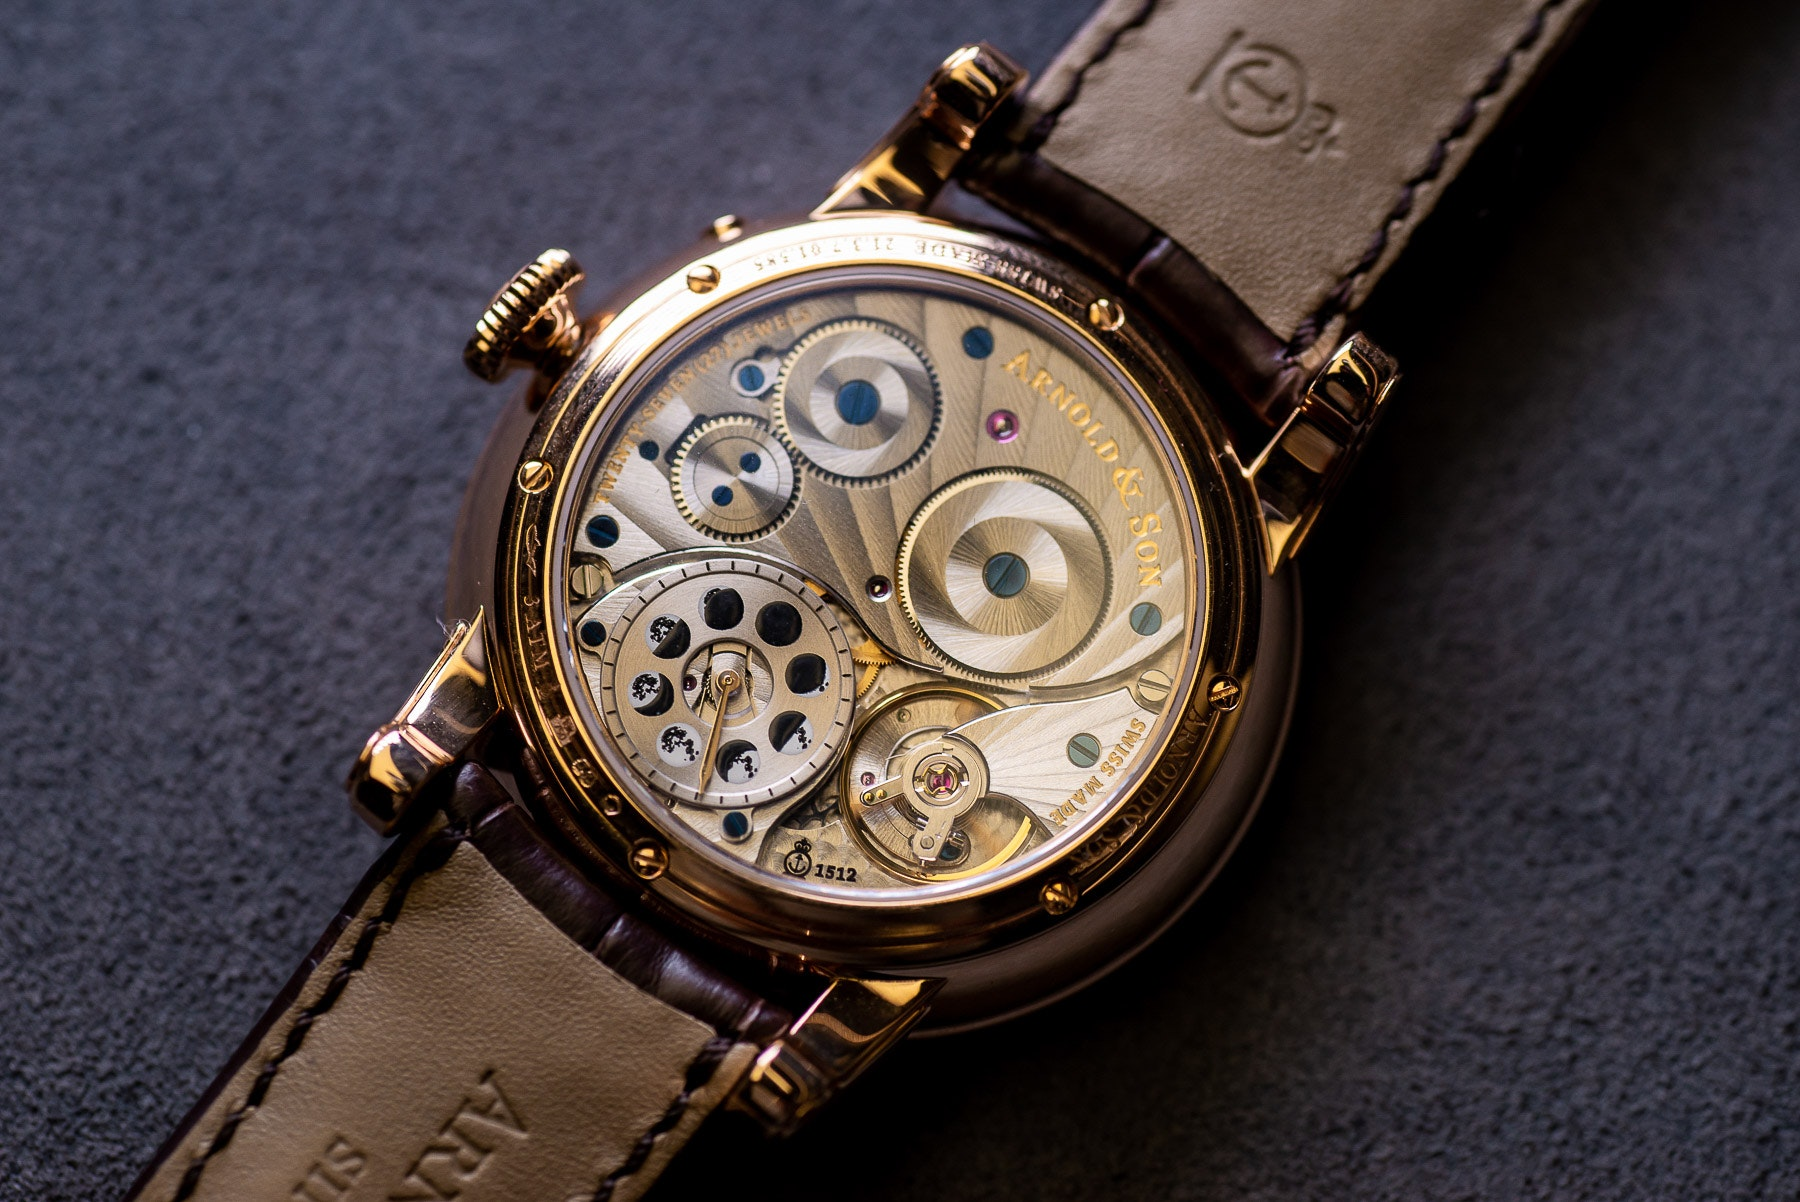 Arnold & Son at Baselworld 2019: Brilliance in transition